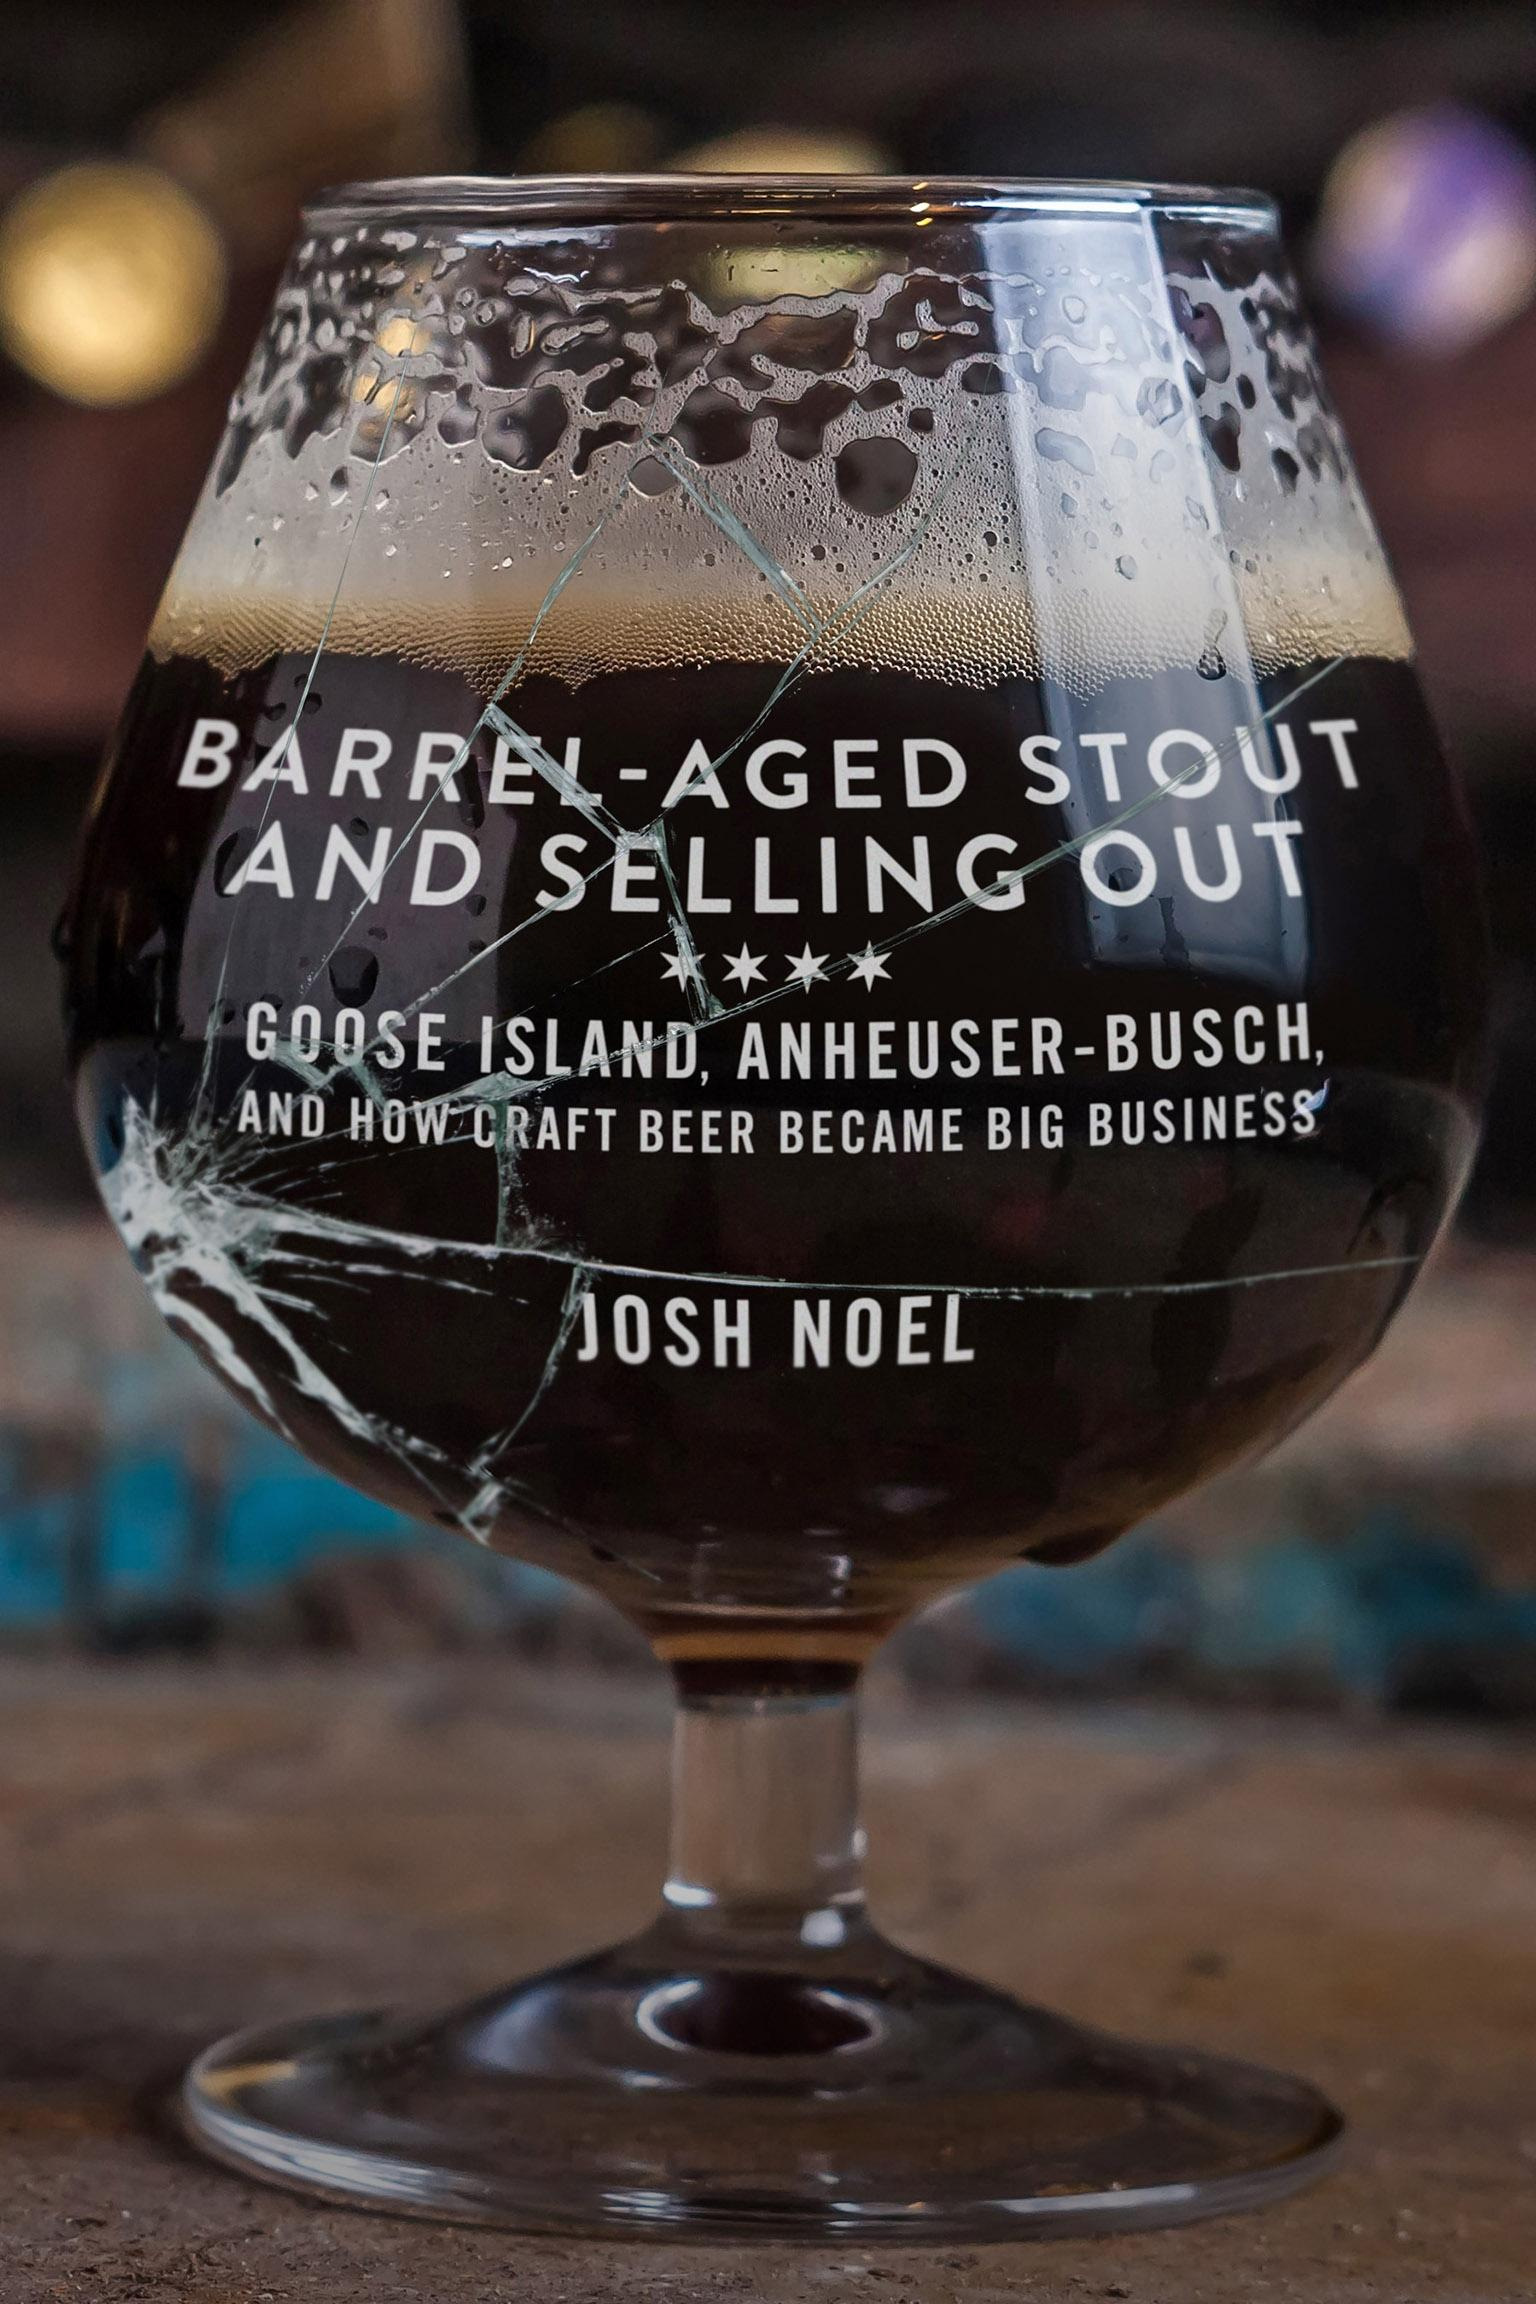 Beer lovers have flocked to Chicago for one of the nation's signature  events: the Festival of Wood and Barrel Aged Beer. FOBAB, to those in the  know.